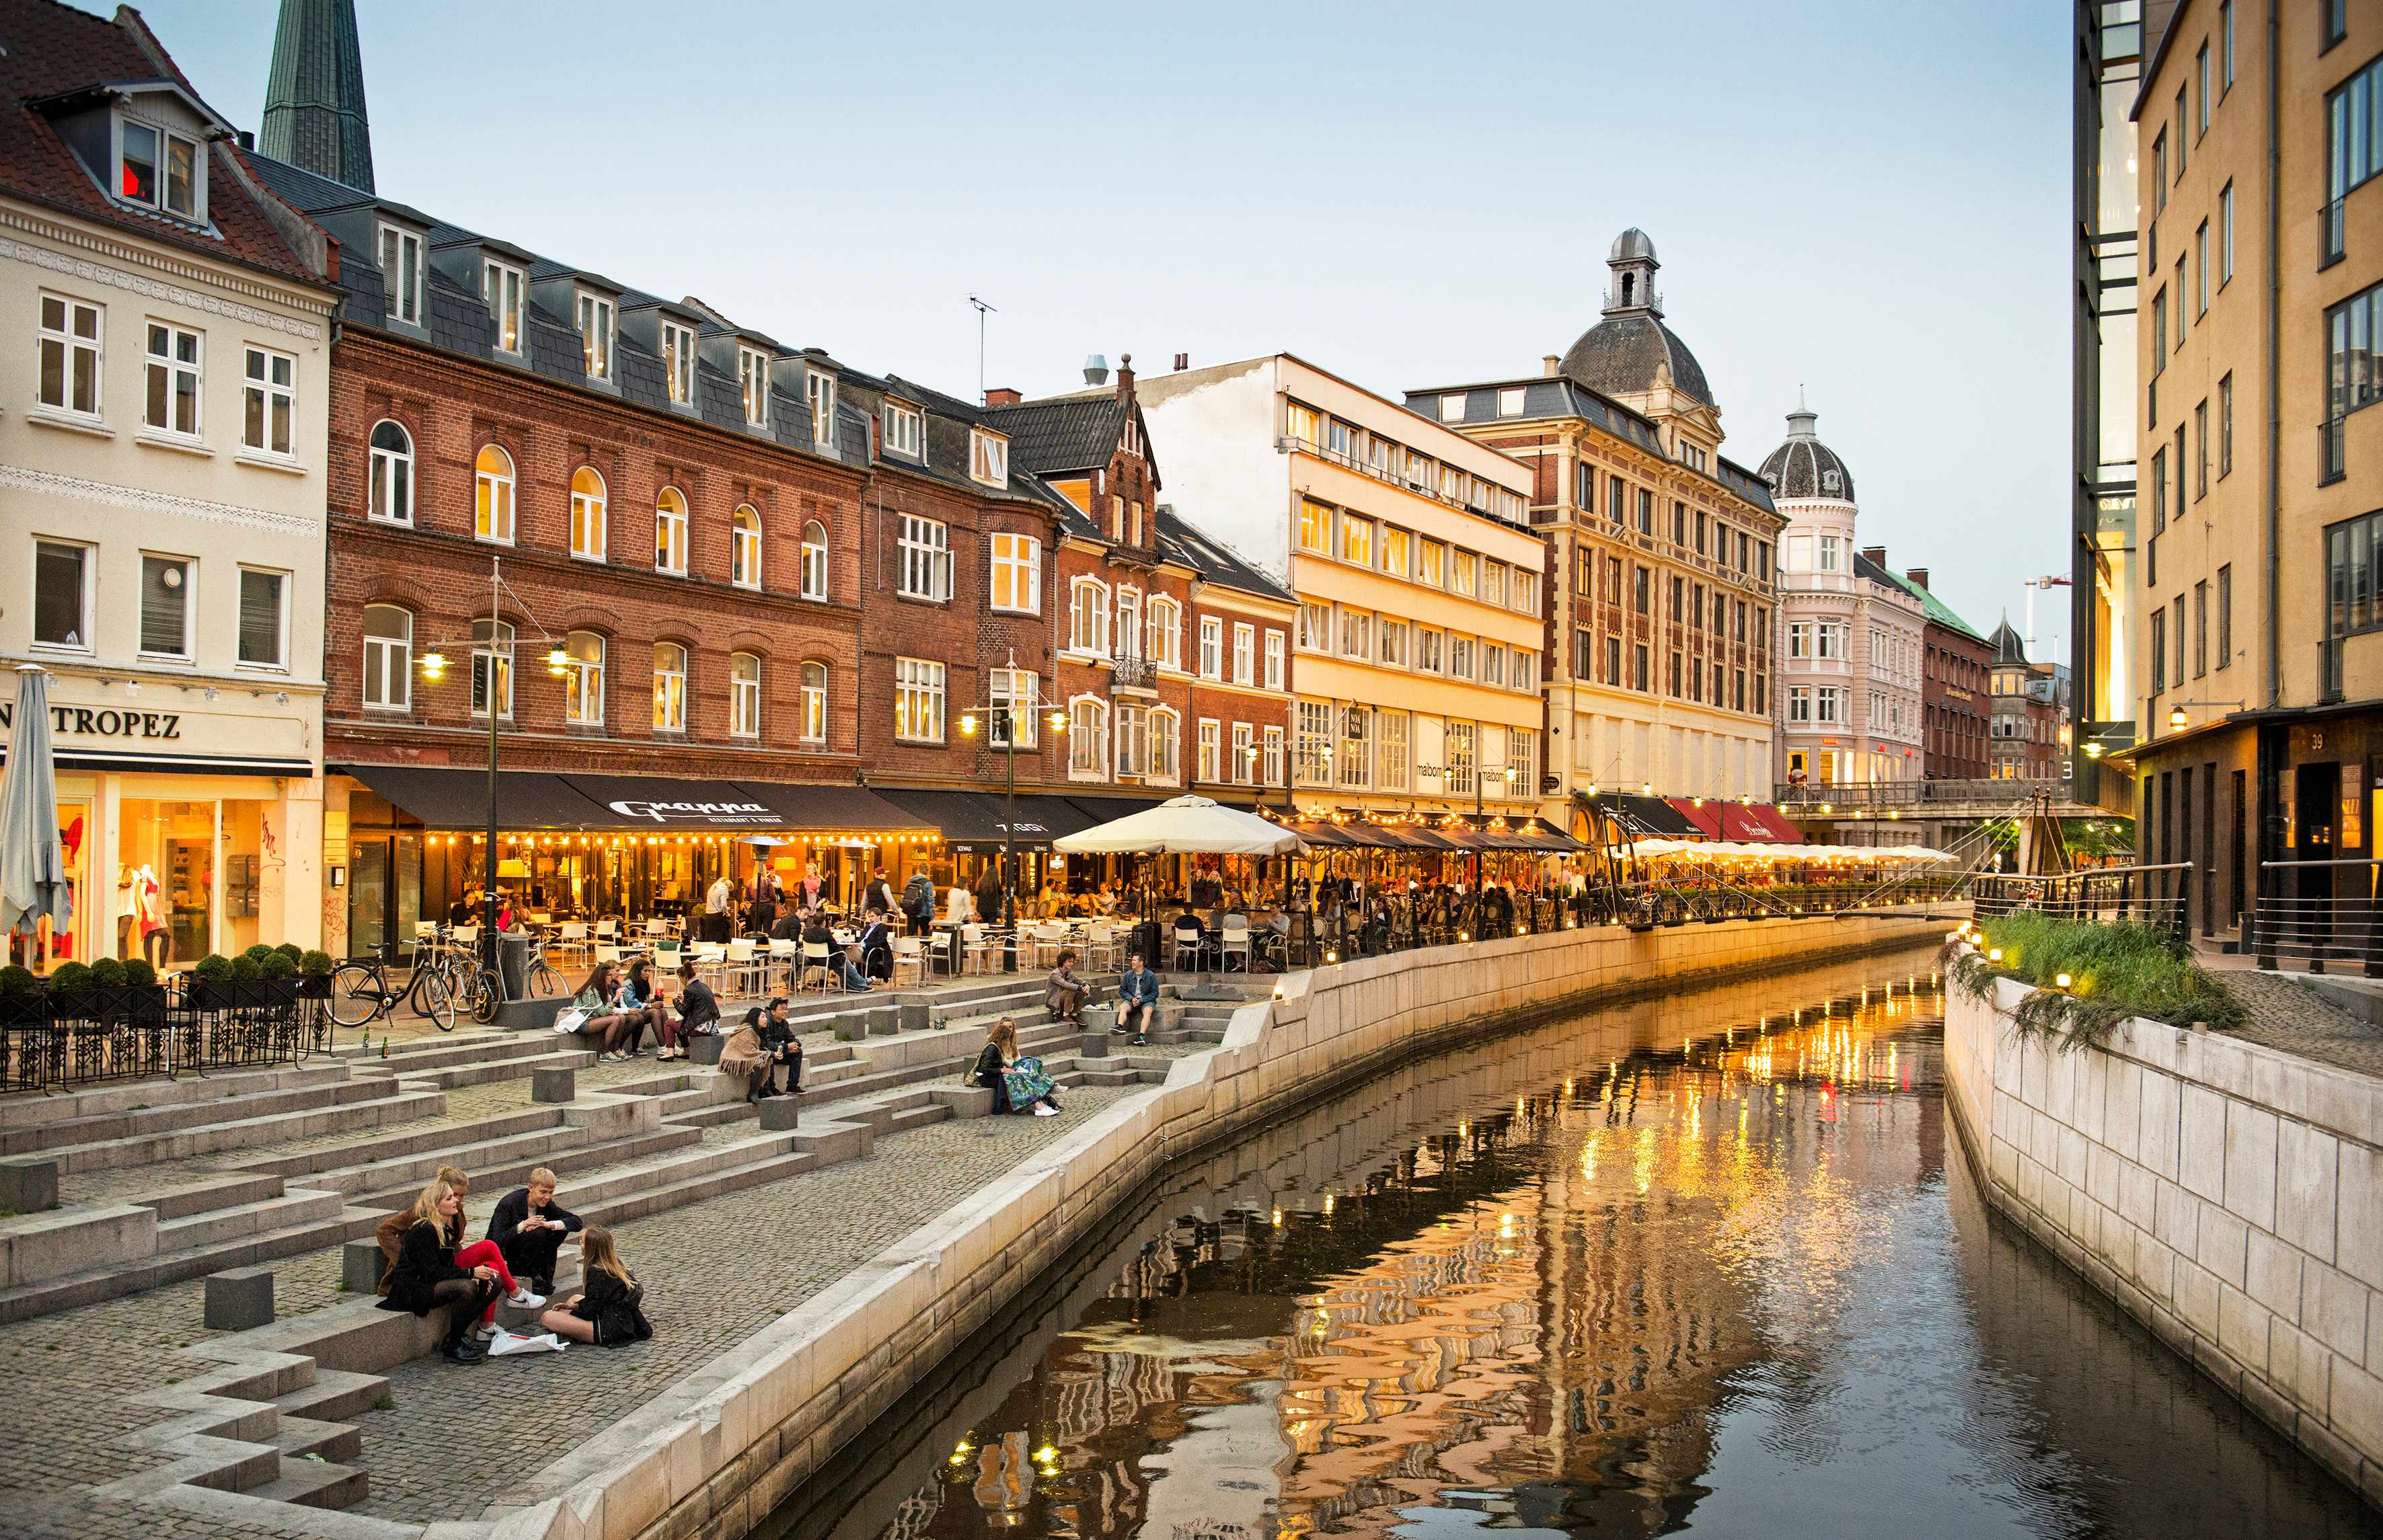 A canal and sunset-lit buildings in Aarhus Denmark